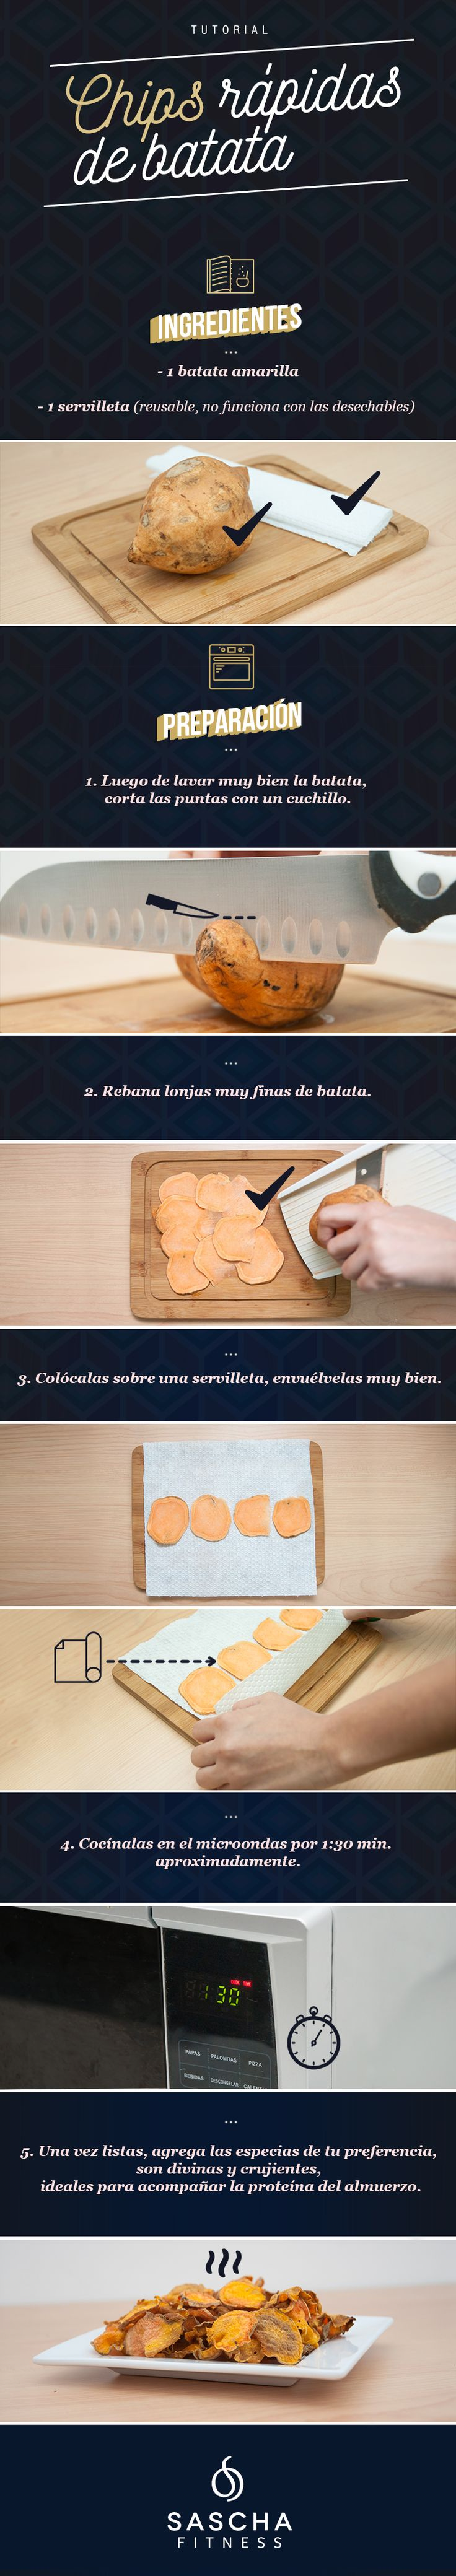 Tutorial: chips rápidas de batata